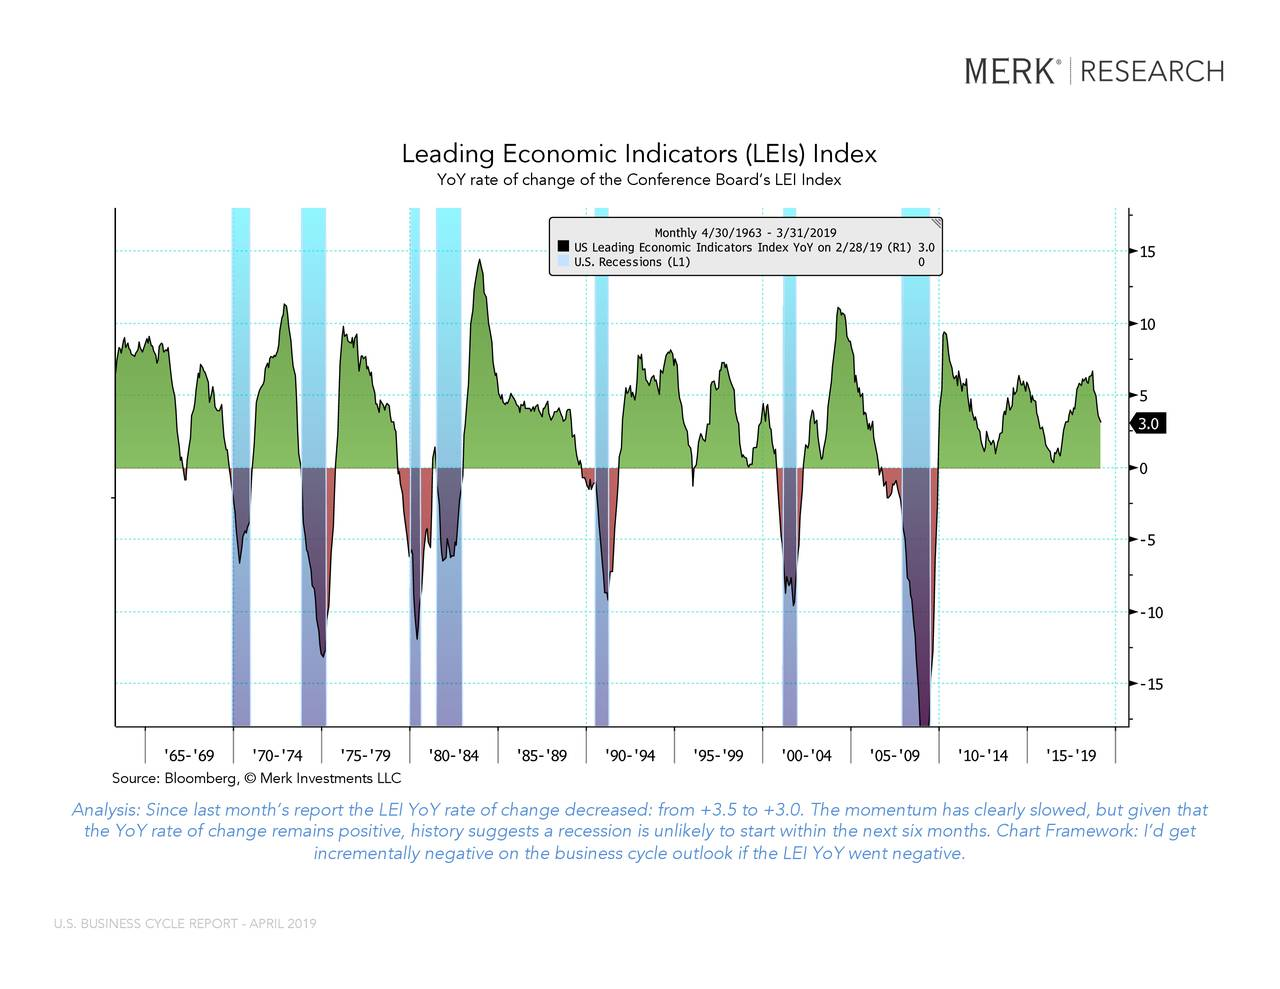 """LEI YOY Index (Conference Board US Leadi... USRINDEX Index (U.S. Recession Indicator... Leading Economic Indicators (LEIs) Index YoY rate of change of the Conference Board's LEI Index Source: Bloomberg,© Merk Investments LLC This report may not be modified or altered in any way. The BLOOMBERG PROFESSIONAL service and BLOOMBERG Data are owned and distributed locally by Bloomberg Finance LP (""""BFLP"""") and its subsidiaries in all jurisdictions other than Argentina, Bermuda, China, India, Japan and Korea (the (""""BFLP do not provide investment advice, and nothing herein shall constitute an offer of financial instruments by BFLP, BLP or their affiliates.upport and service for the Services and distributes the Services either directly or through a non-BFLP subsidiary in the BLP Countries. BFLP, BLP and their affiliates Analysis: Since last month's report the LEI YoY rate of change decreased: from +3.5 to +3.0. The momentum has clearly slowed, but given that the YoY rate of change remains positive, history suggests a recession is unlikely to start within the next six months. Chart Framework: I'd get Bloomberg ® 04/05/2019 14:19:14 3 incrementally negative on the business cycle outlook if the LEI YoY went negative. U.S. BUSINESS CYCLE REPORT - APRIL 2019"""